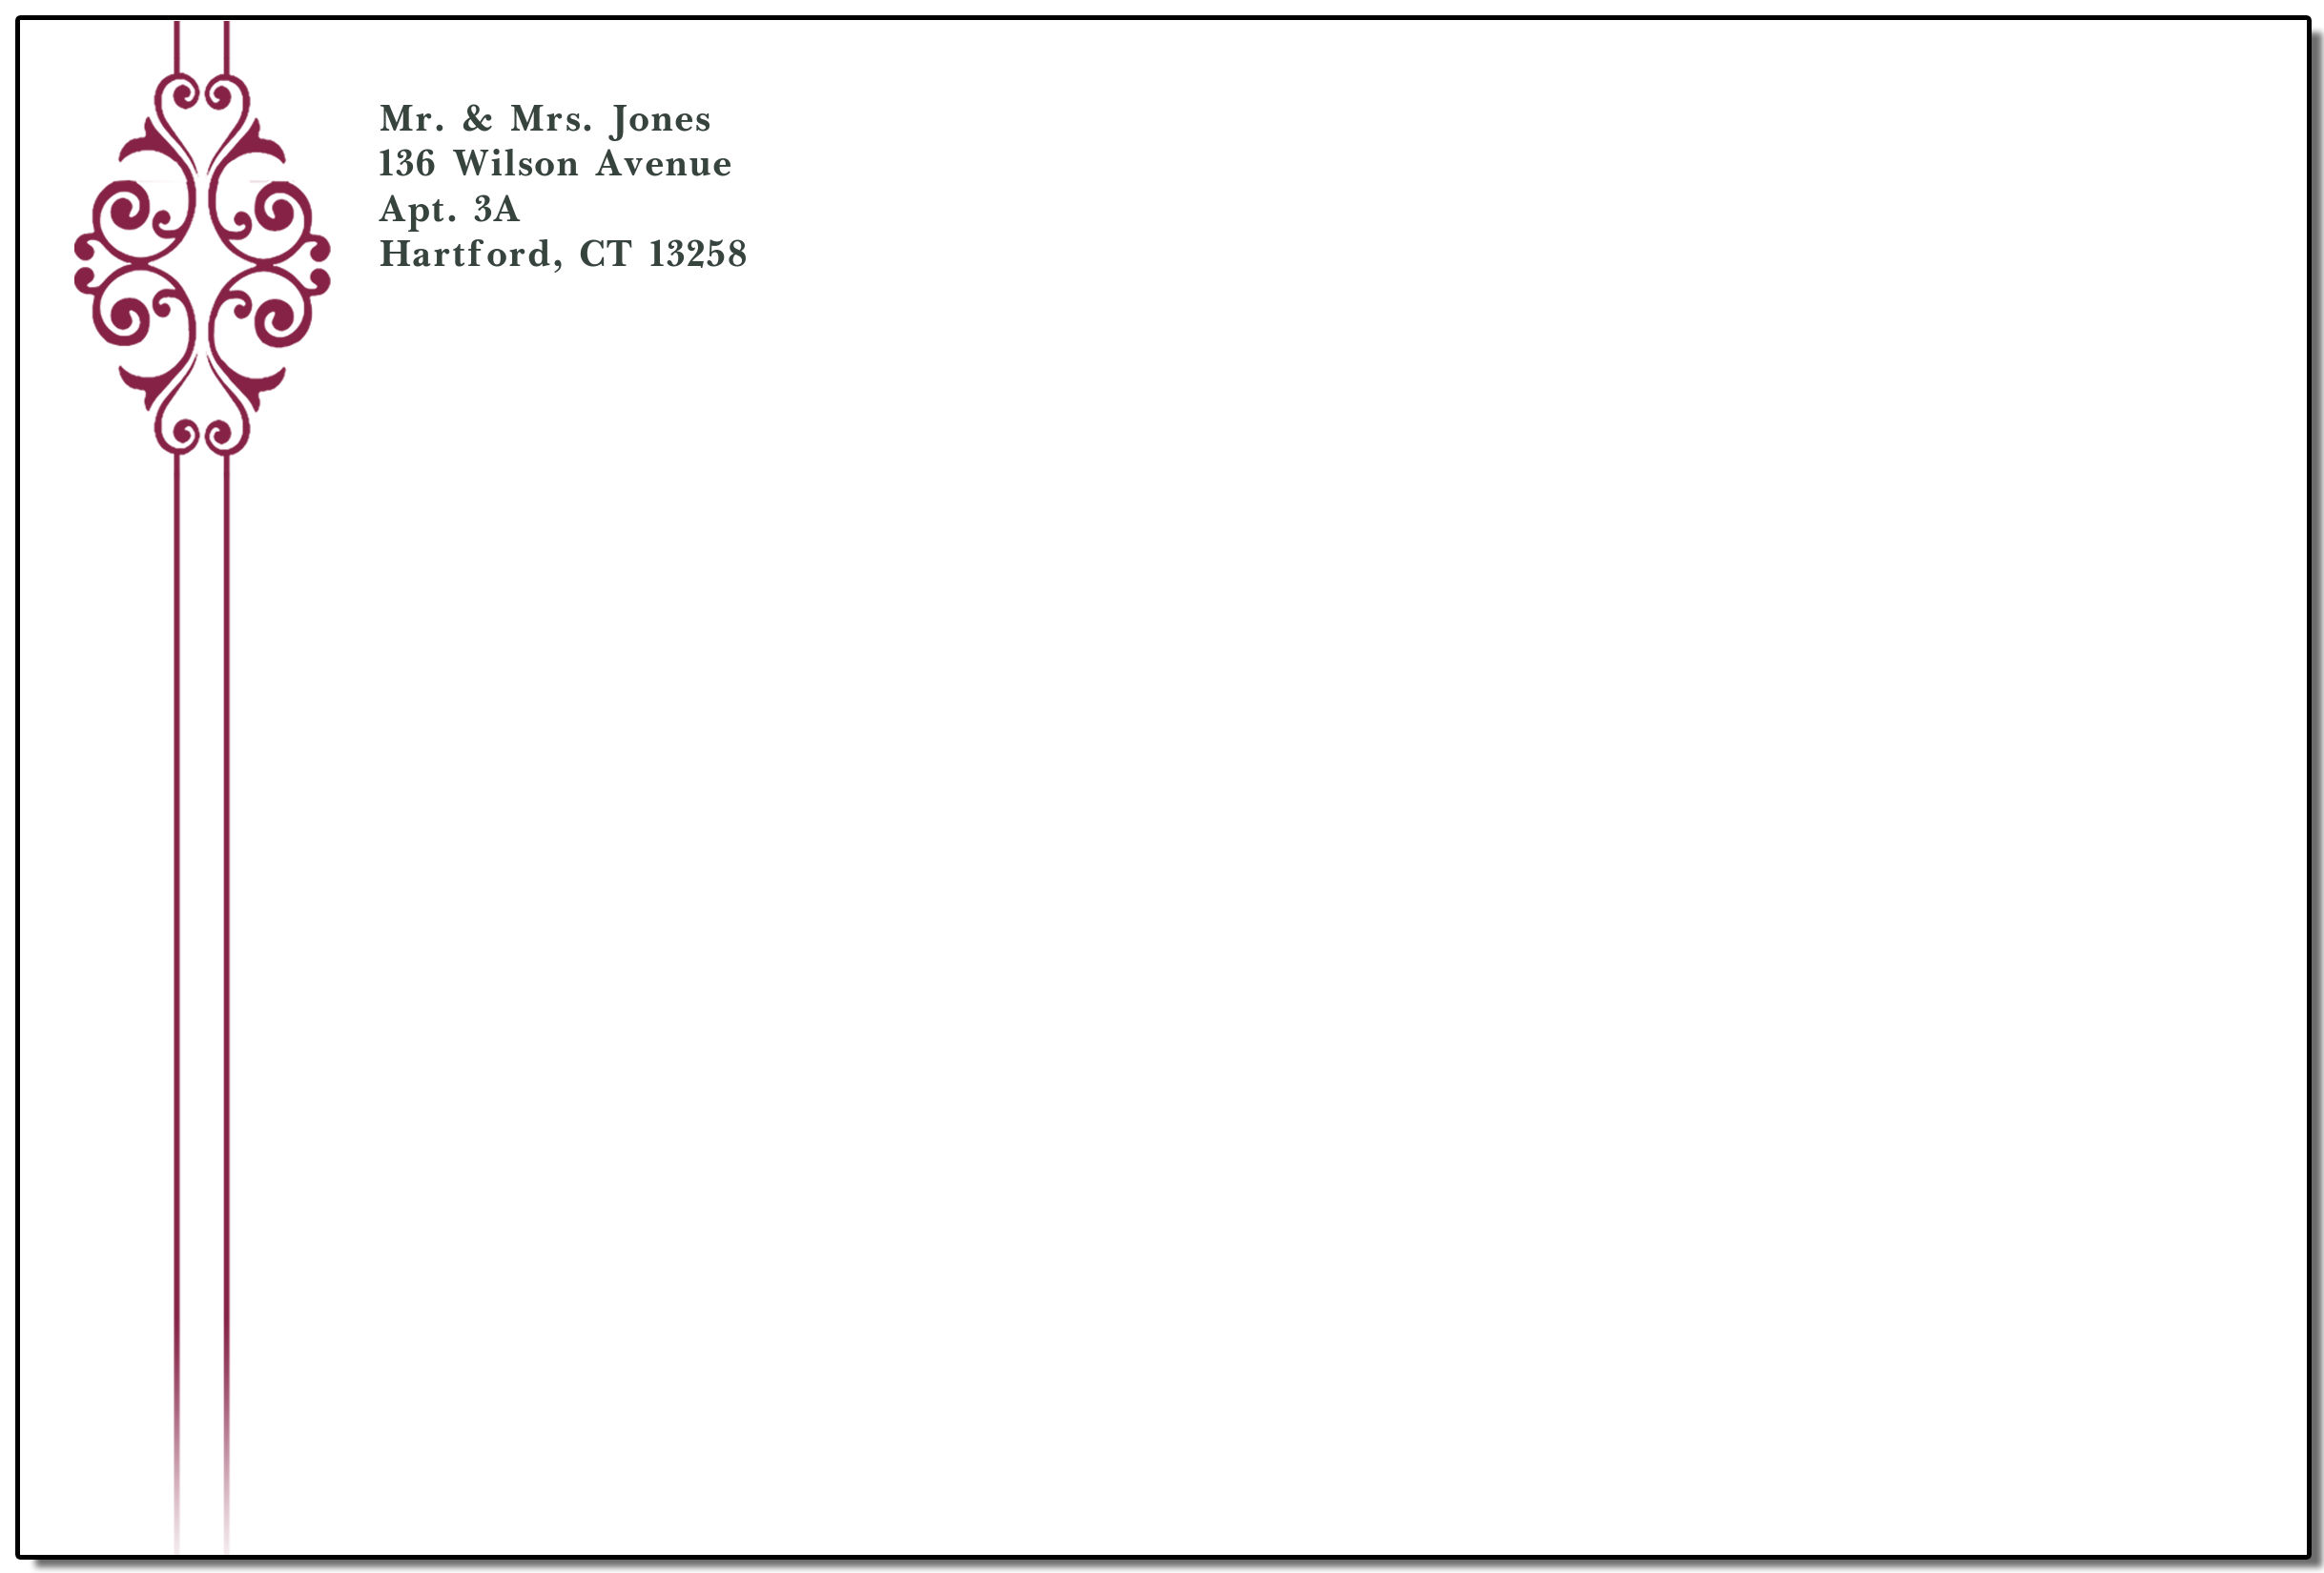 Ribbon Envelopes For Personalized Wedding Invitations Beautiful Envelope Designs Printed On Quality Paper